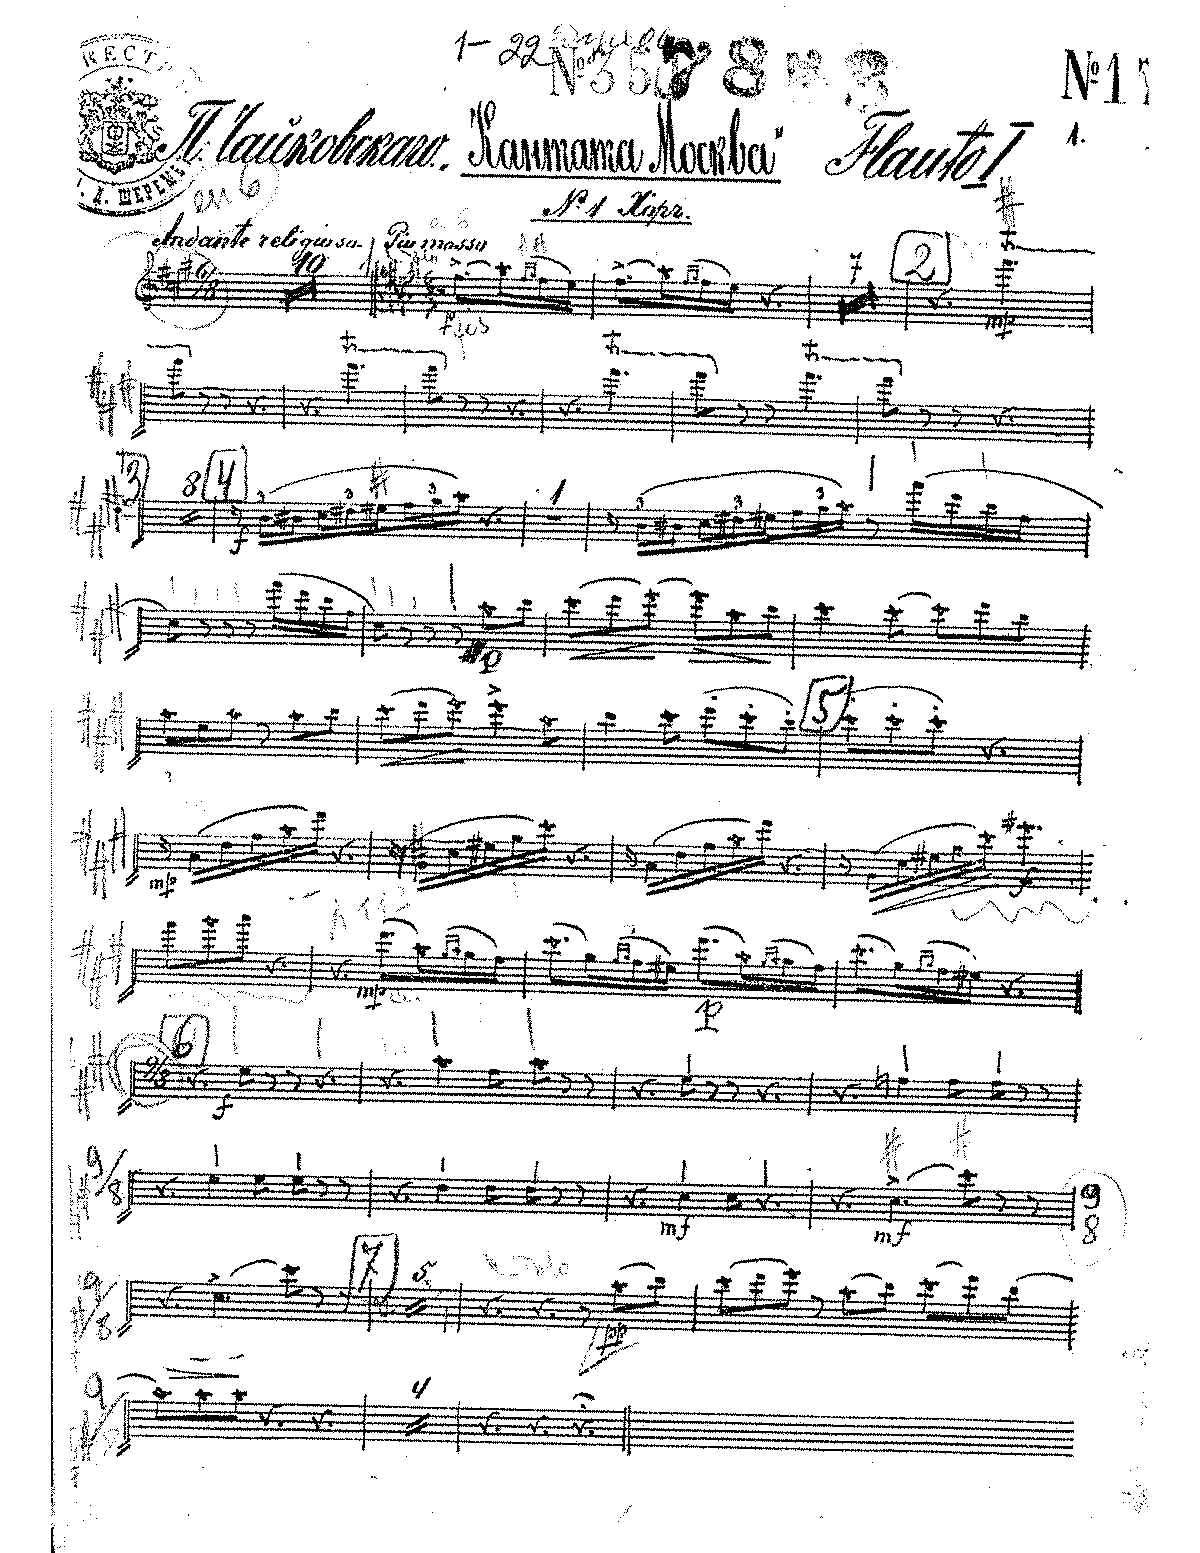 PMLP165988-TCHAIKOVSKT MOSCOW CANTATA Set of Parts.pdf